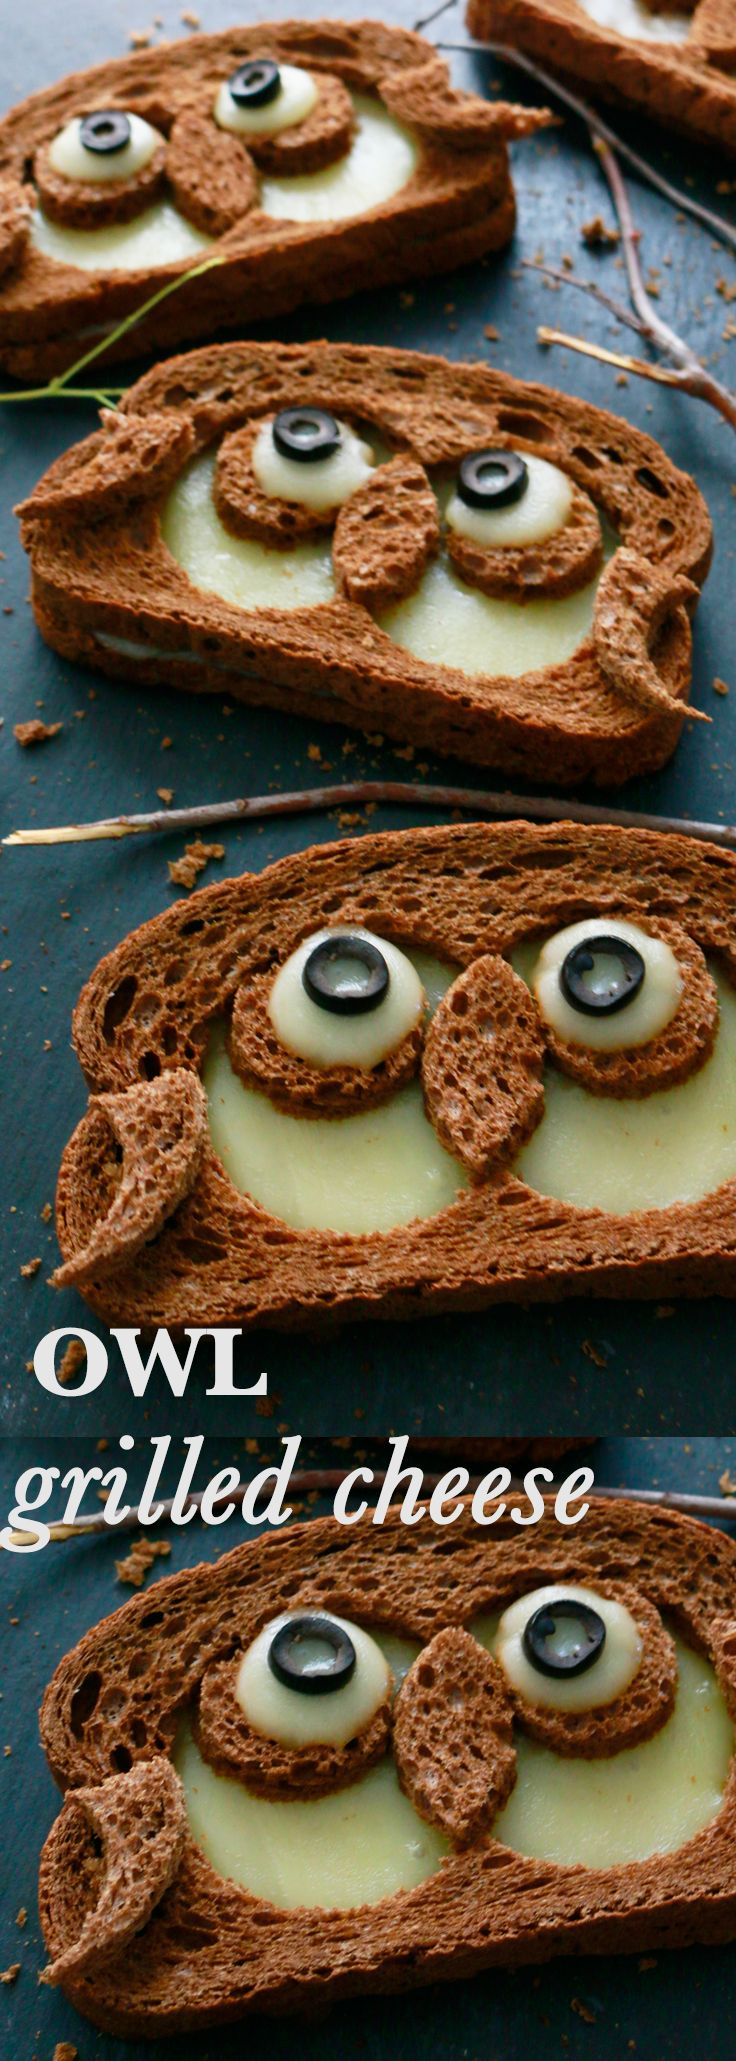 halloween recipes | halloween food | halloween treats | halloween crafts | halloween art | halloween kids | grilled cheese | spooky sandwiches | creative sandwich ideas | lunch box ideas